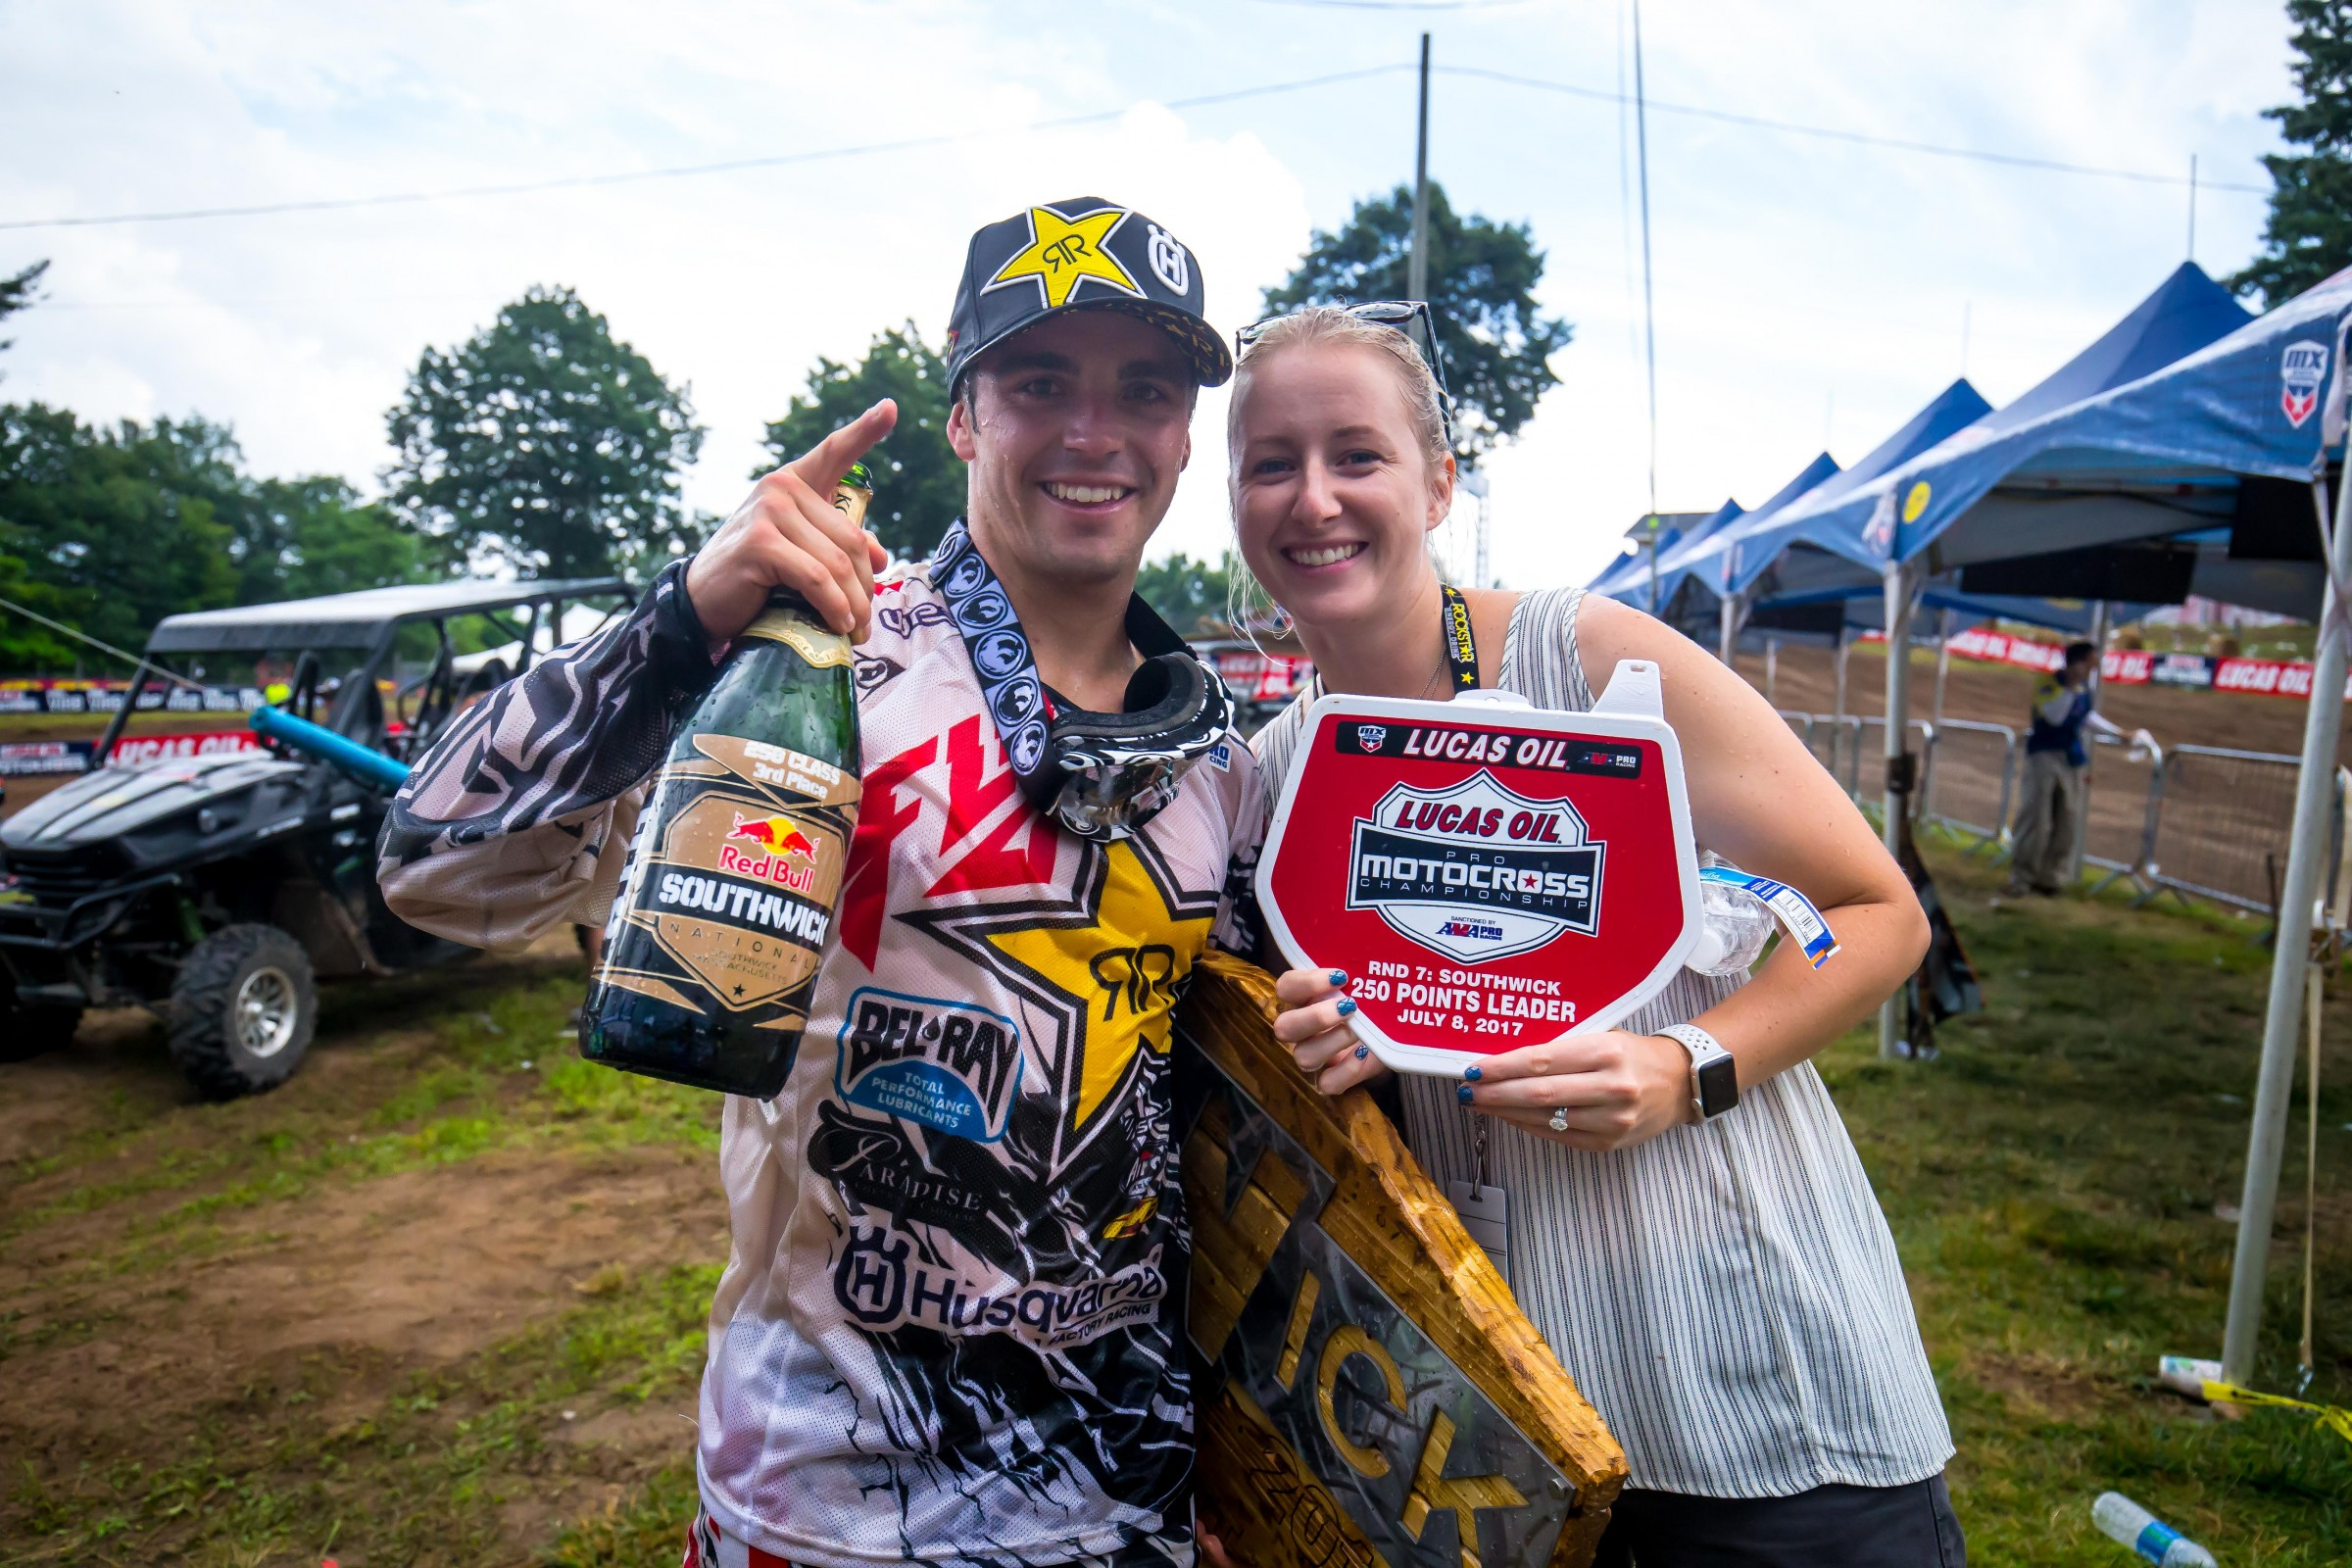 Osborne could potentially turn that points leader plate into a #1 plate this weekend at Unadilla.